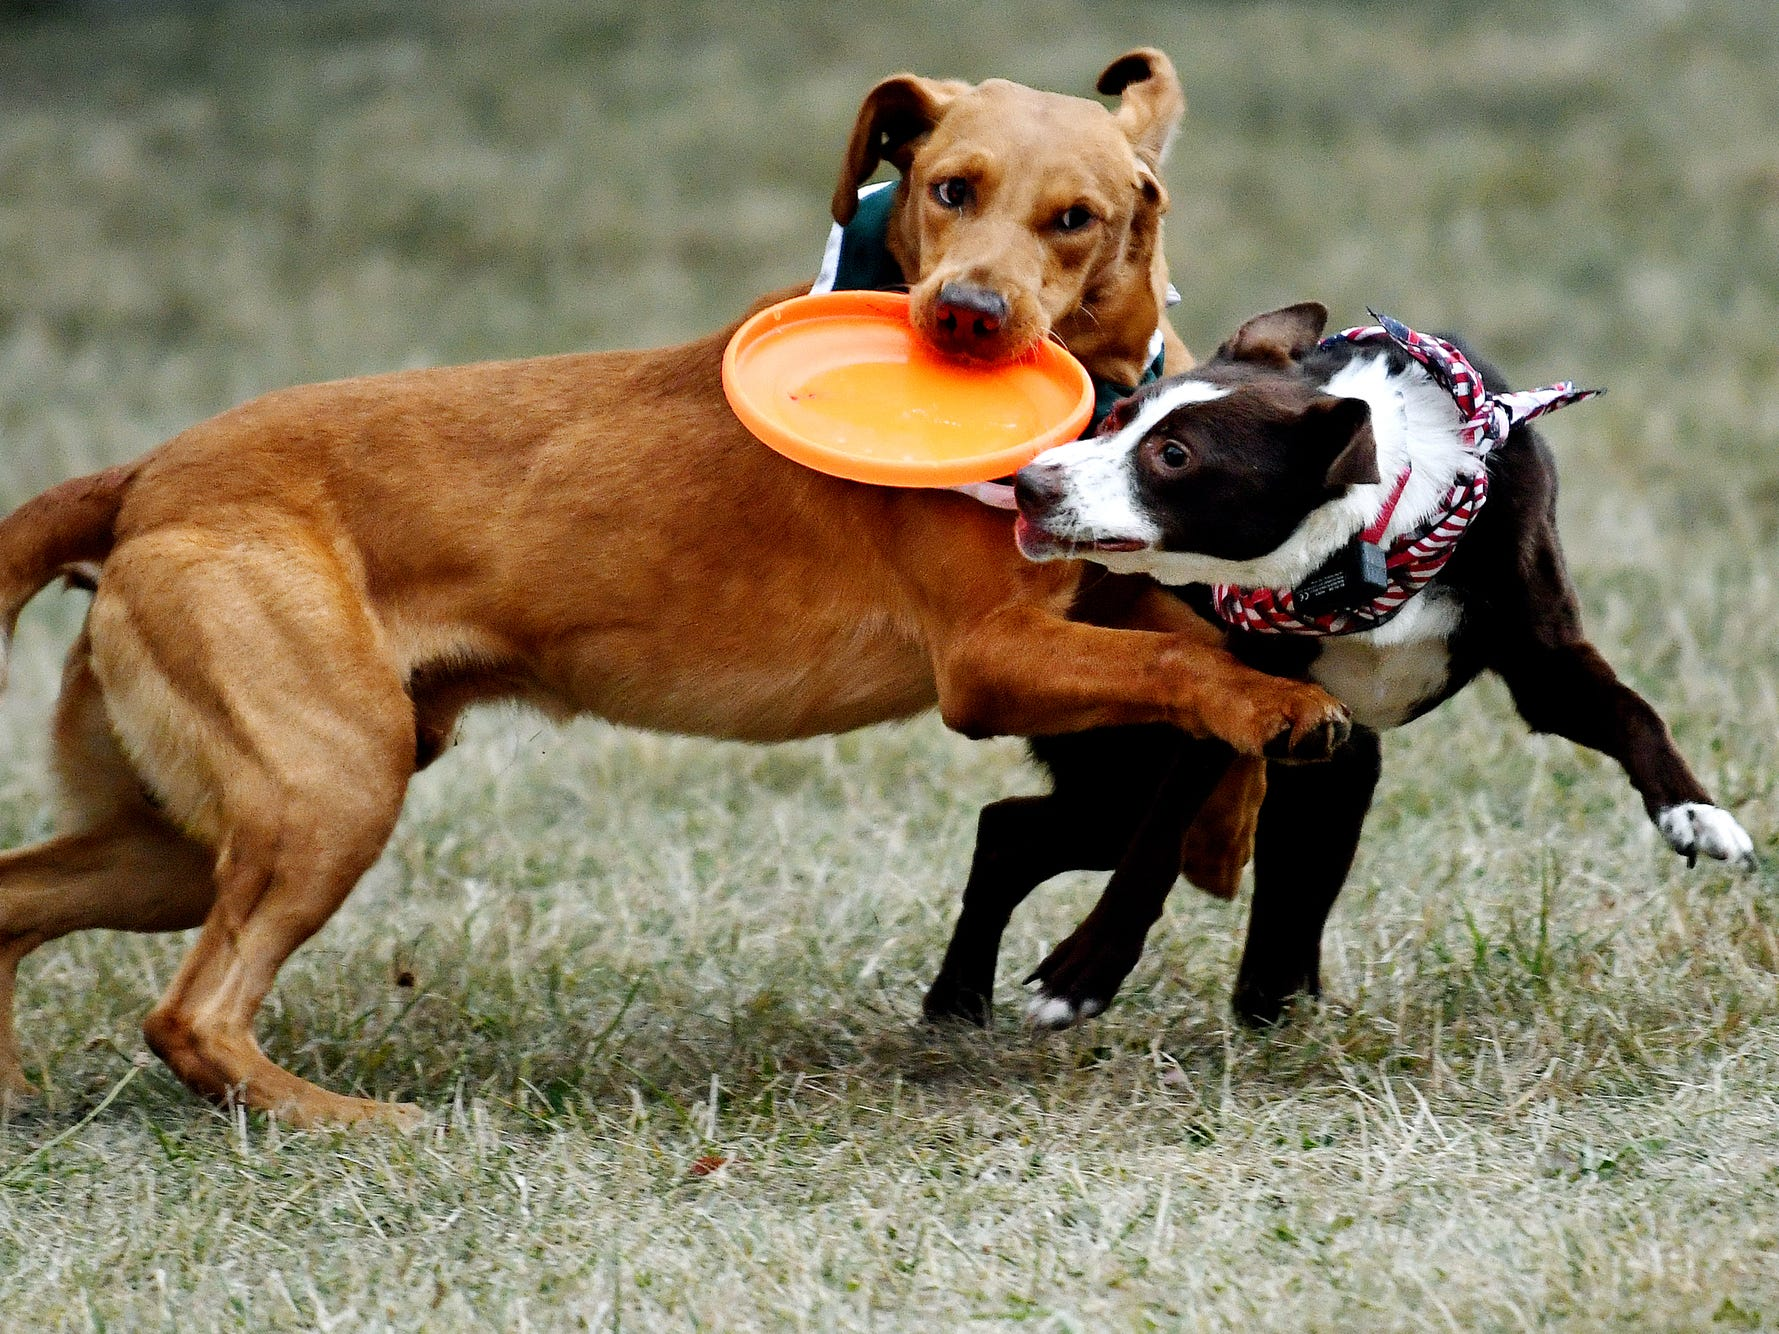 Zeke the Wonderdog IV, left, keeps a flying disc away from Rally during the dogs' performance as part of Play in the Park on Tuesday, July 31, 2018, at Valley Court Park in East Lansing.